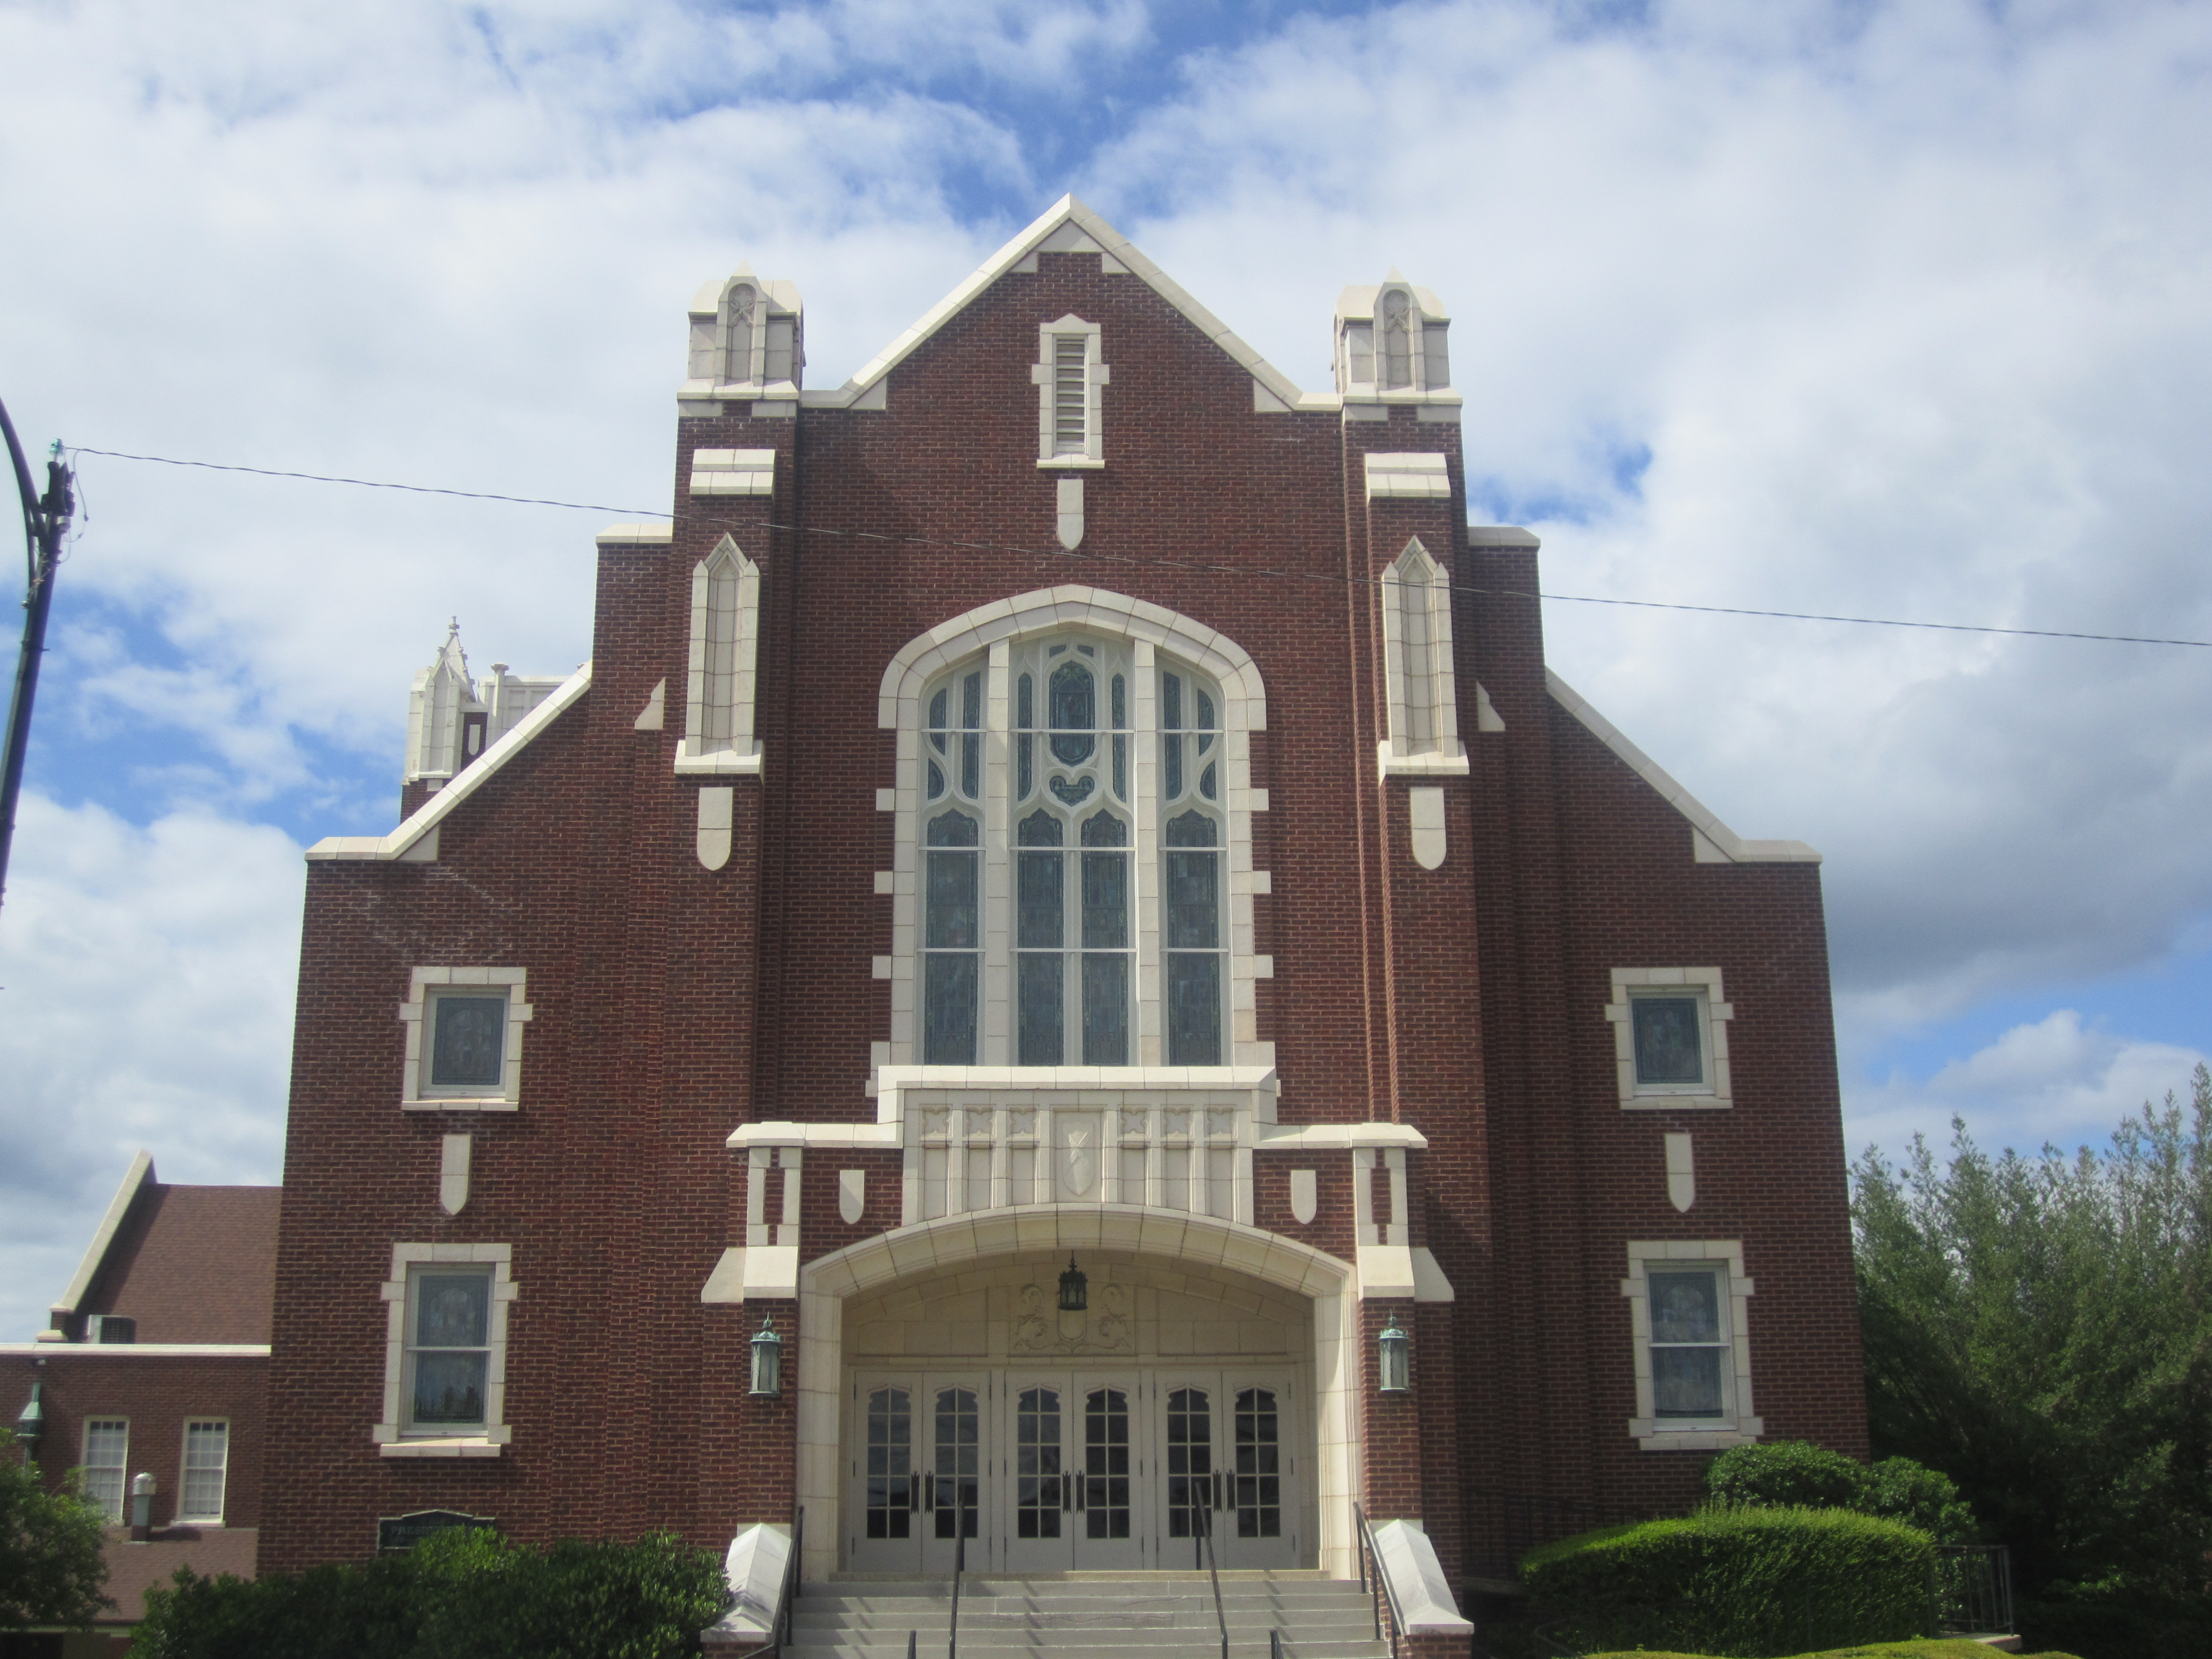 File:First Presbyterian Church, El Dorado, AR IMG 2617.JPG